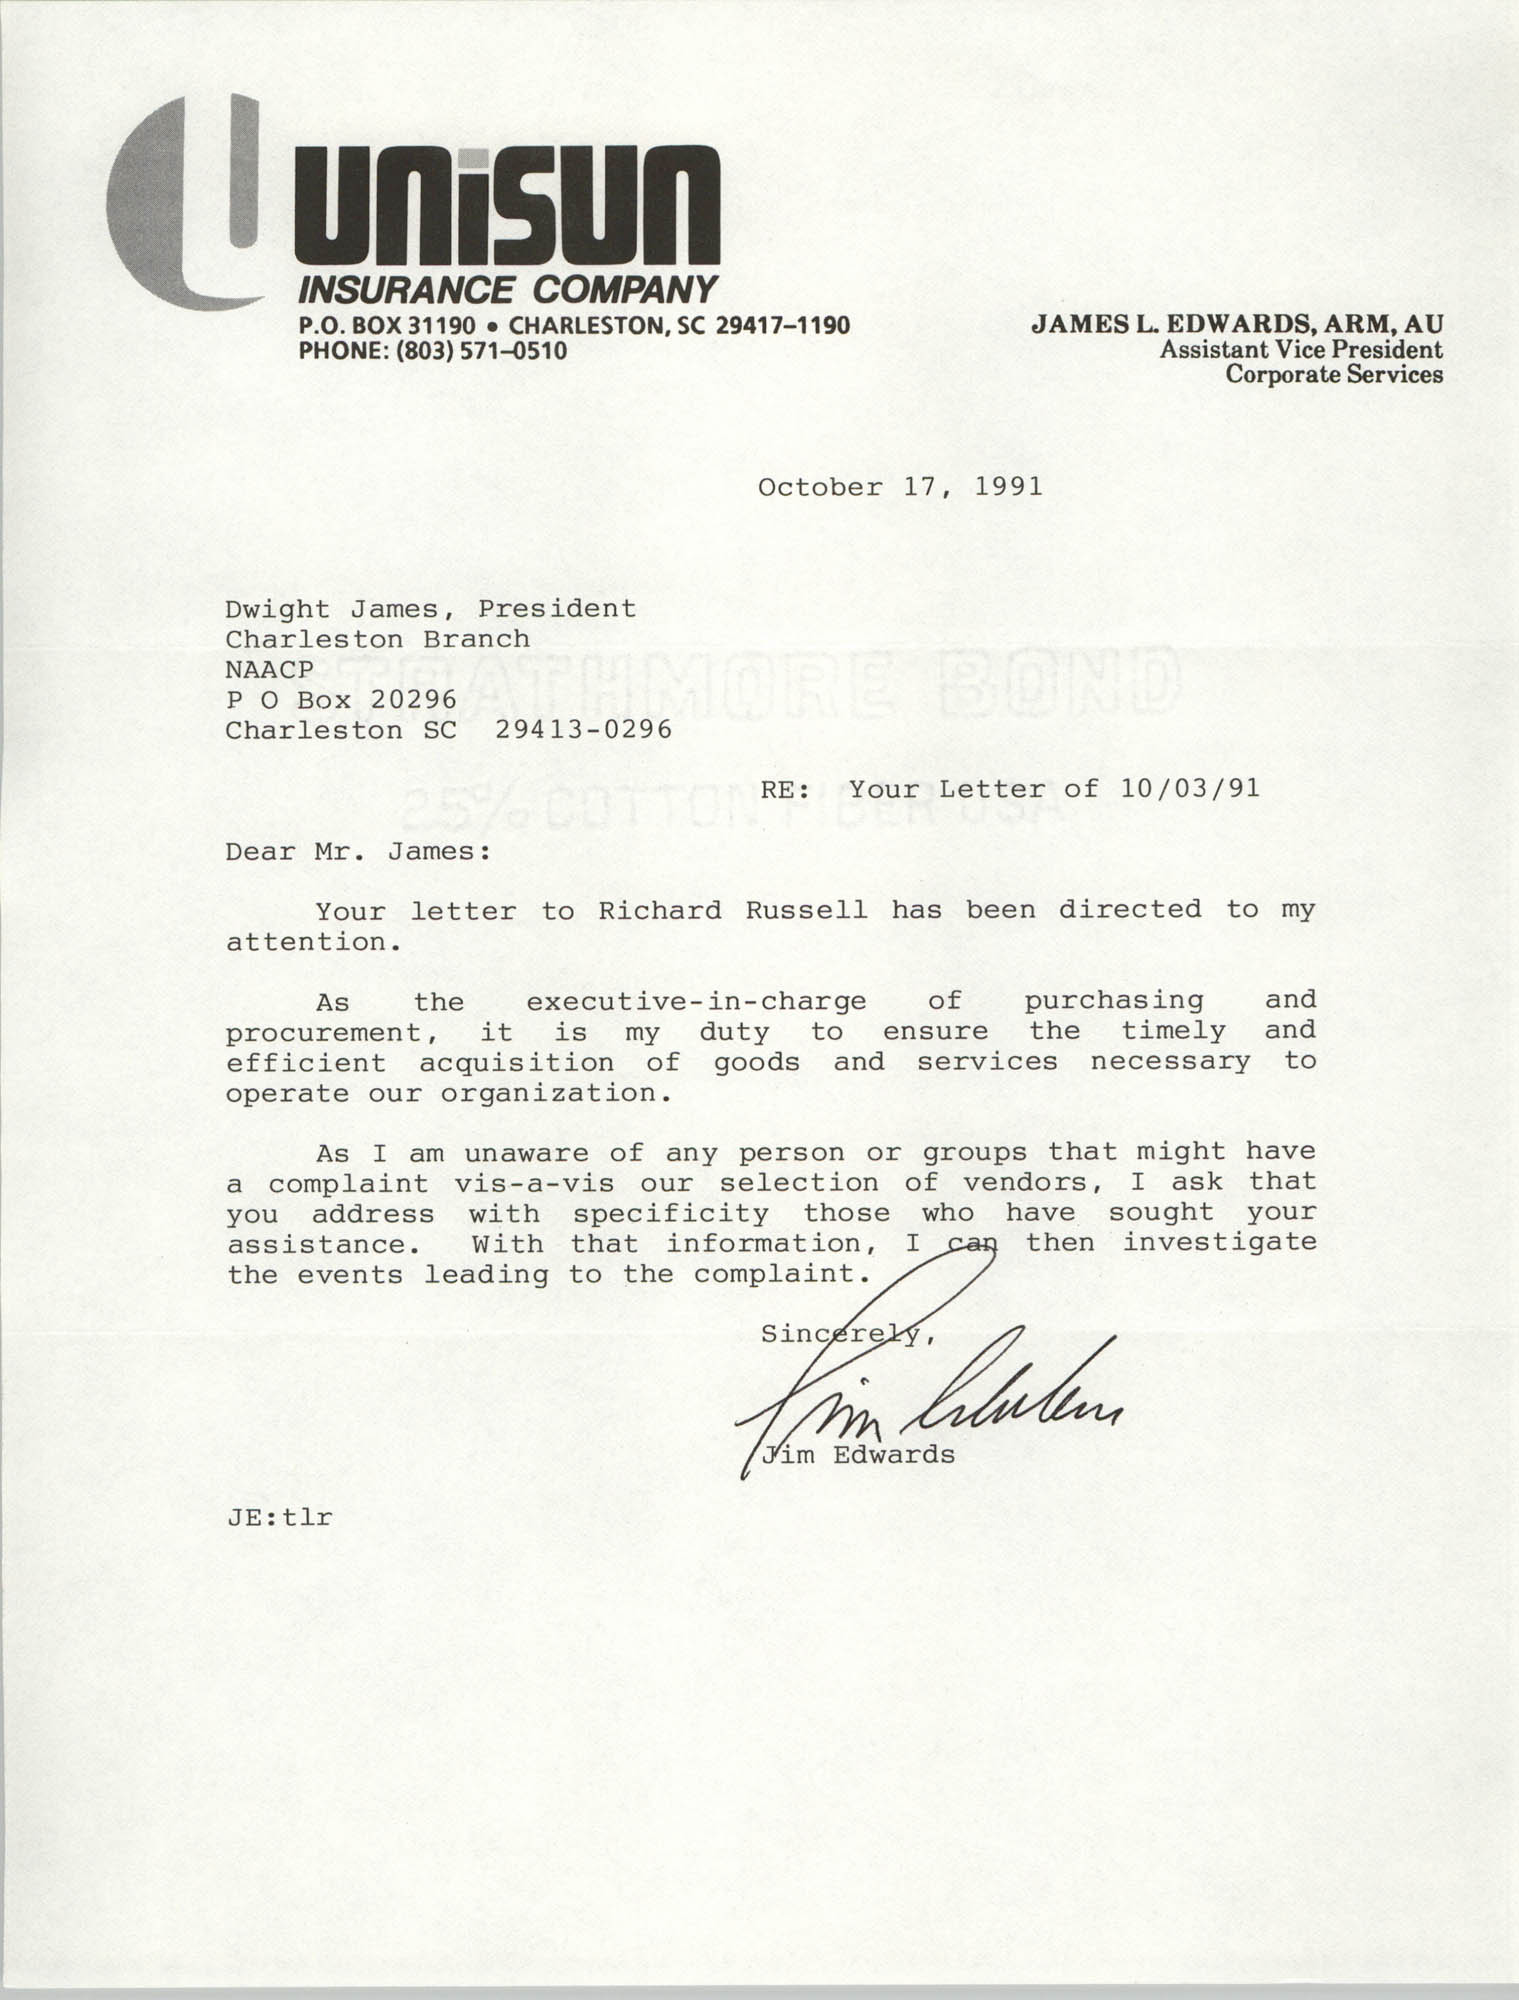 Letter from James Edwards to Dwight James, October 17, 1991